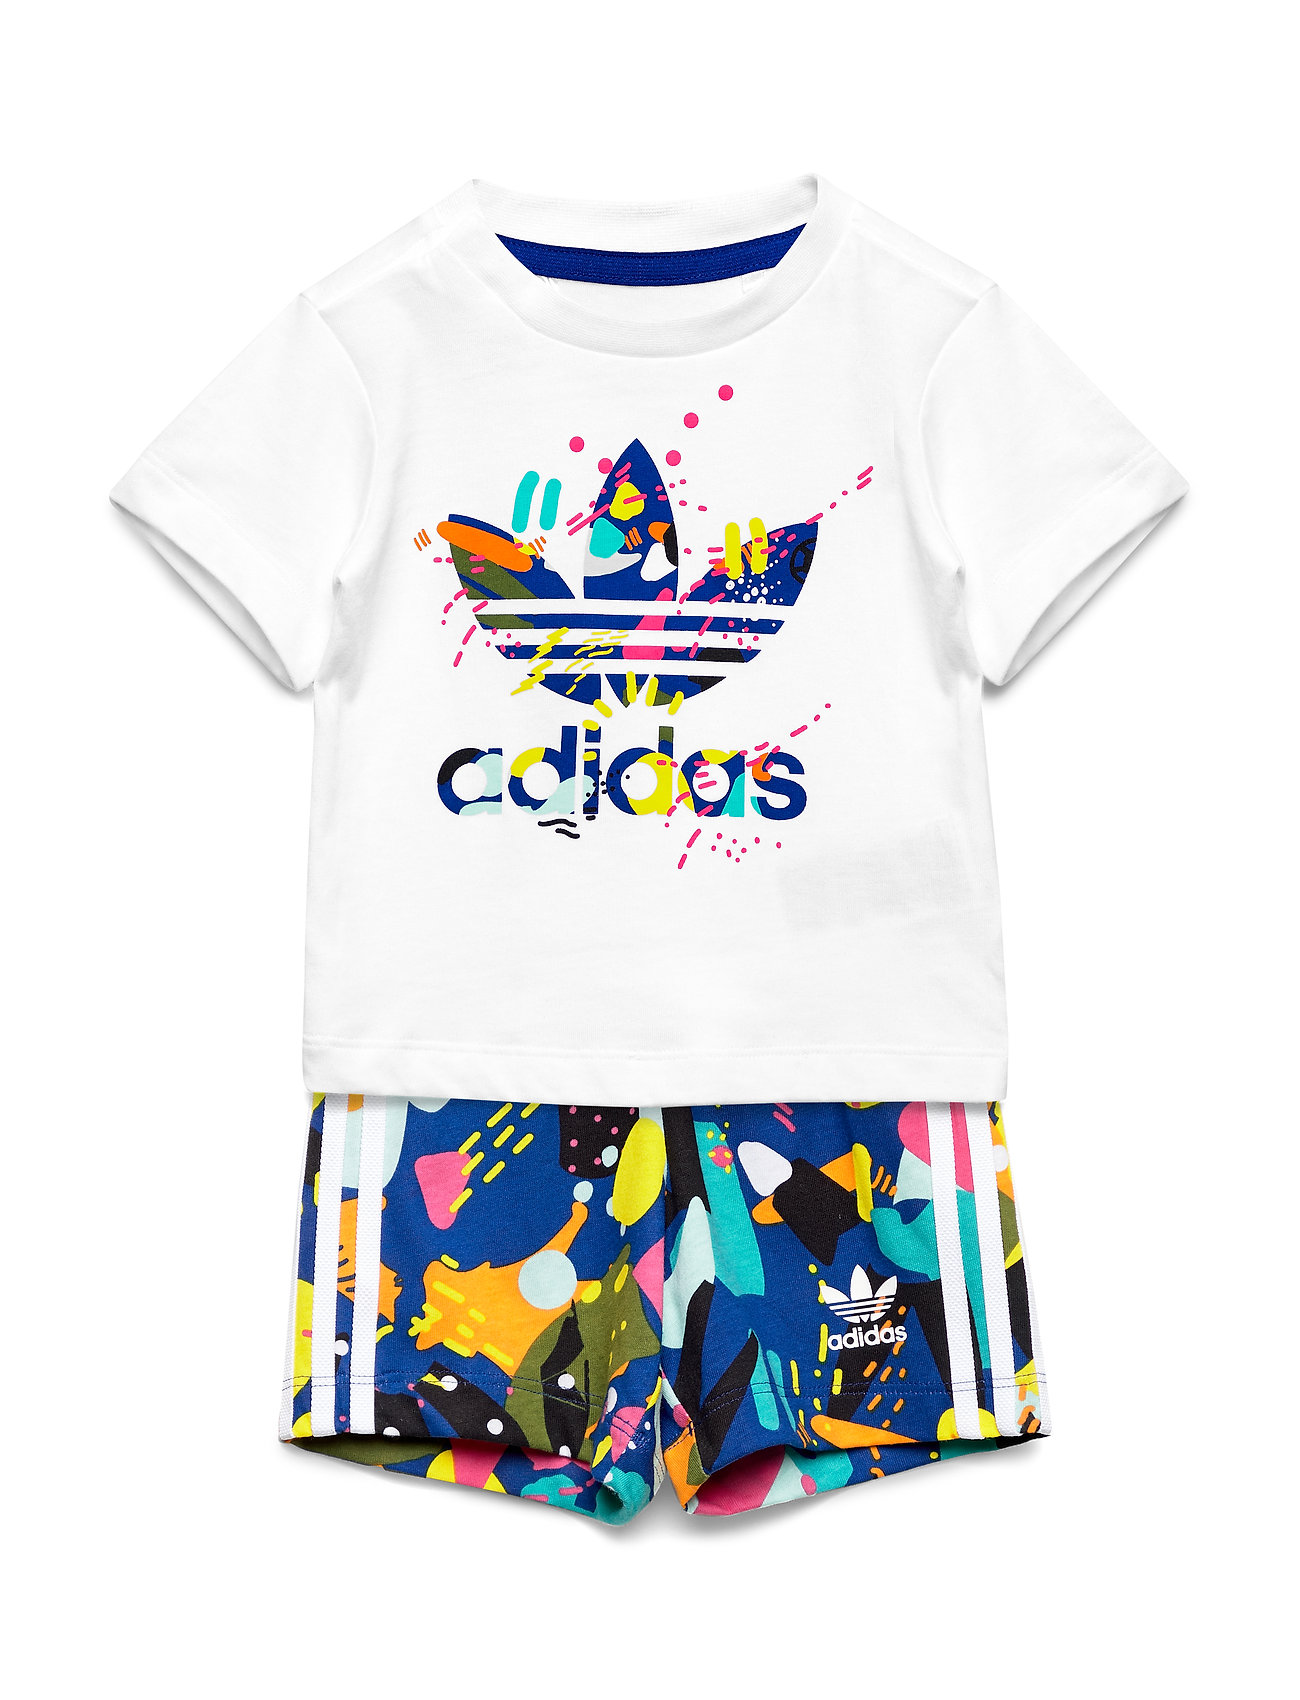 adidas Originals SHORT SET - WHITE/MULTCO